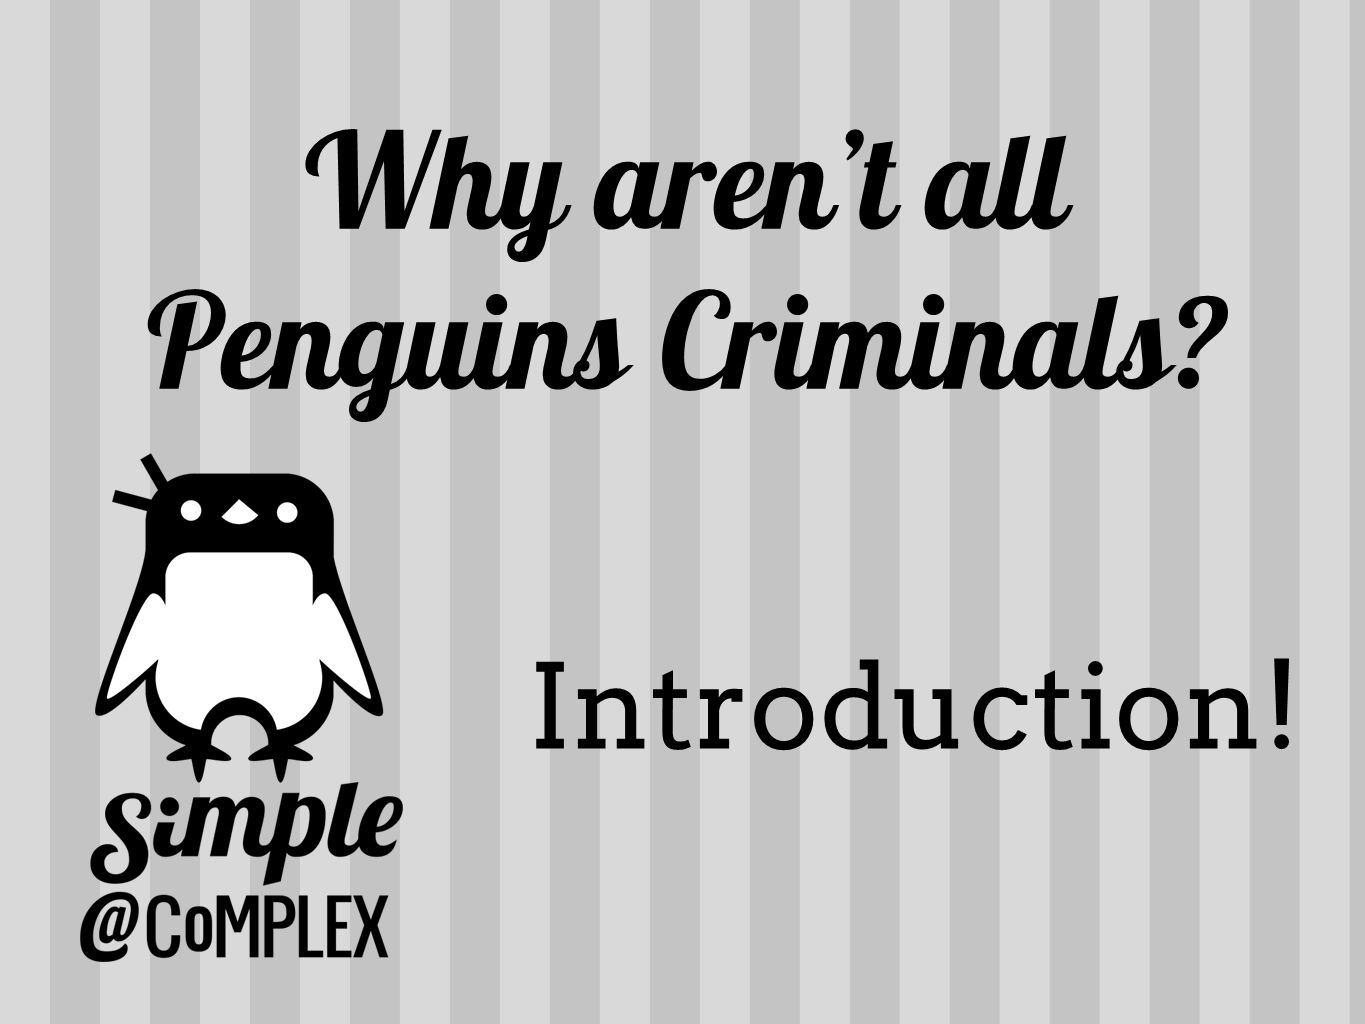 Introduction! Why aren't all Penguins Criminals?